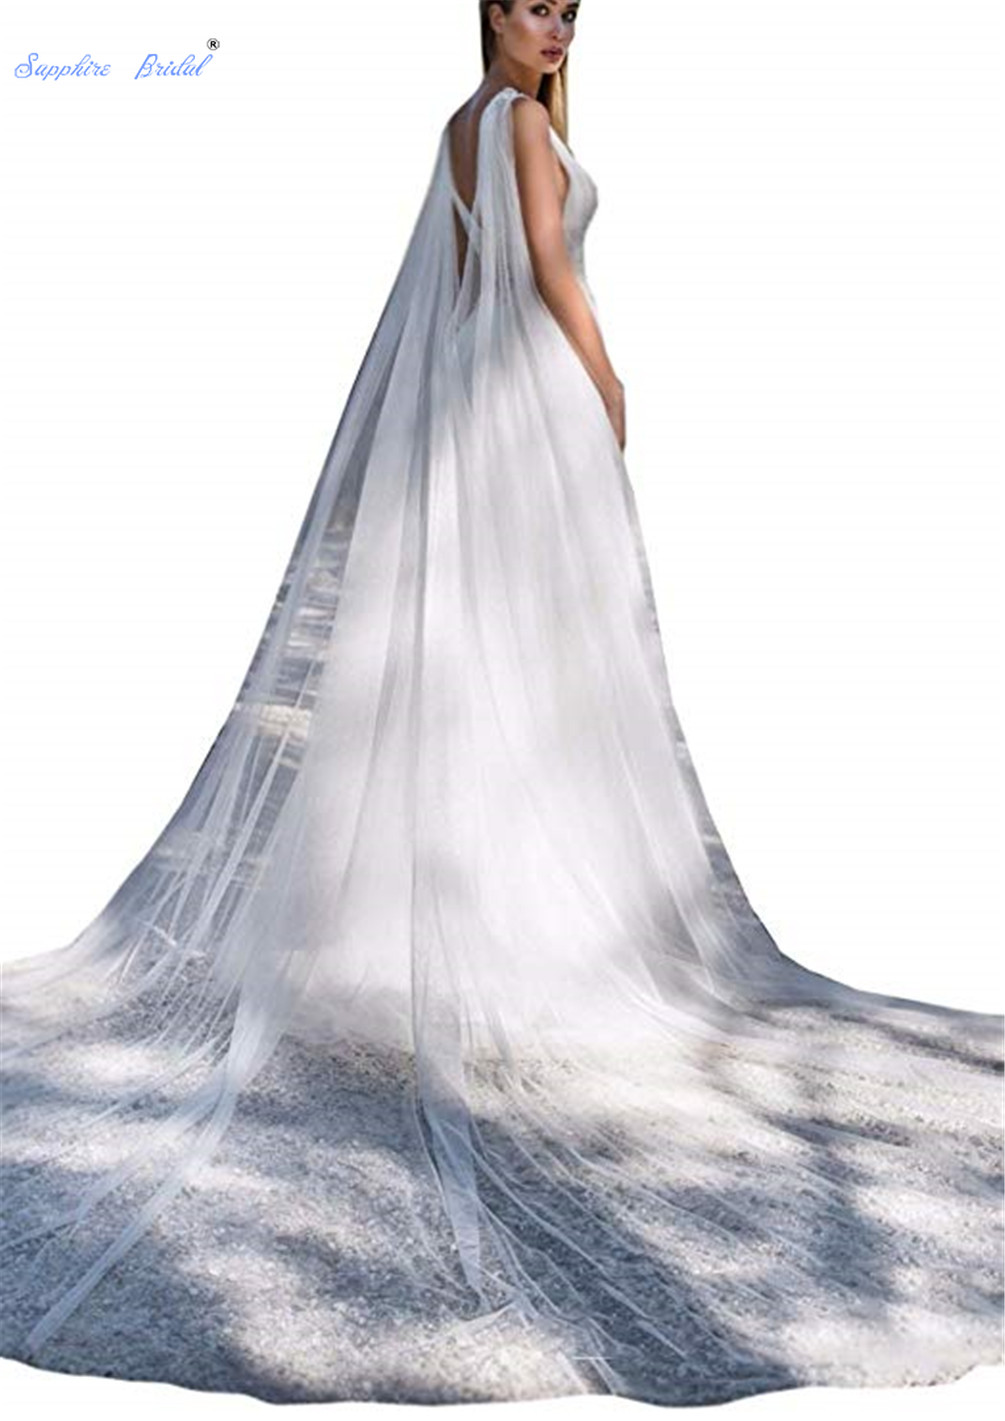 Sapphire Bridal Women's Elegant 3m/4m White/ivory Wedding Cape Tulle Long Train Bridal Shawl Wrap Cloak